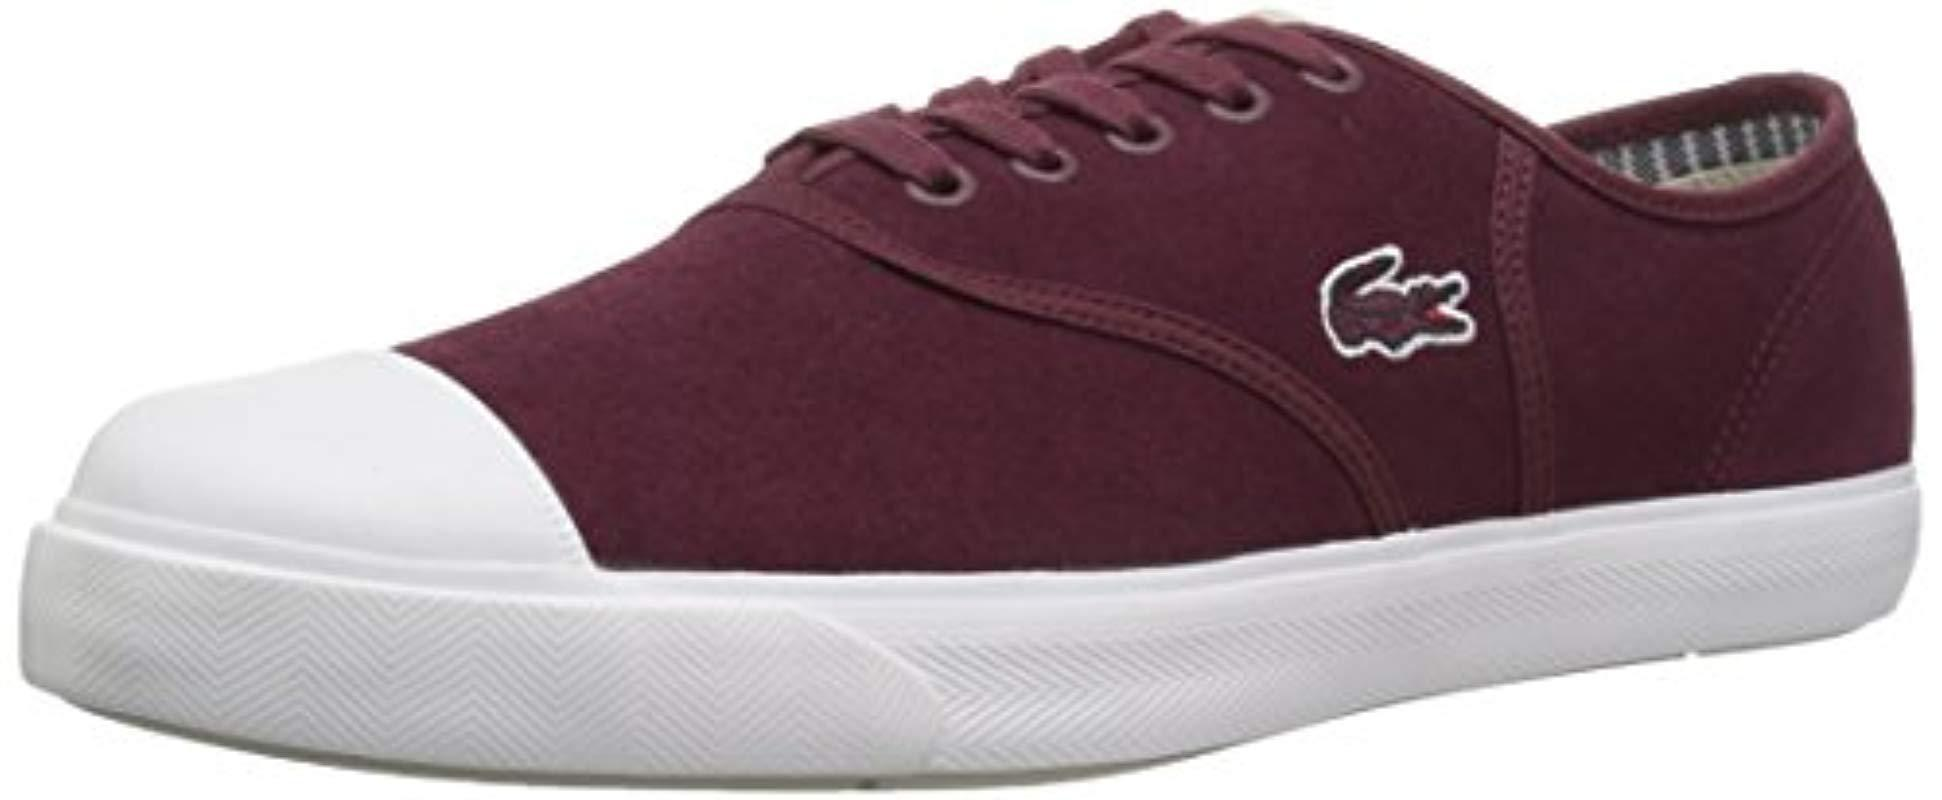 863adb745b50d1 Lyst - Lacoste Rene 317 1 Sneaker for Men